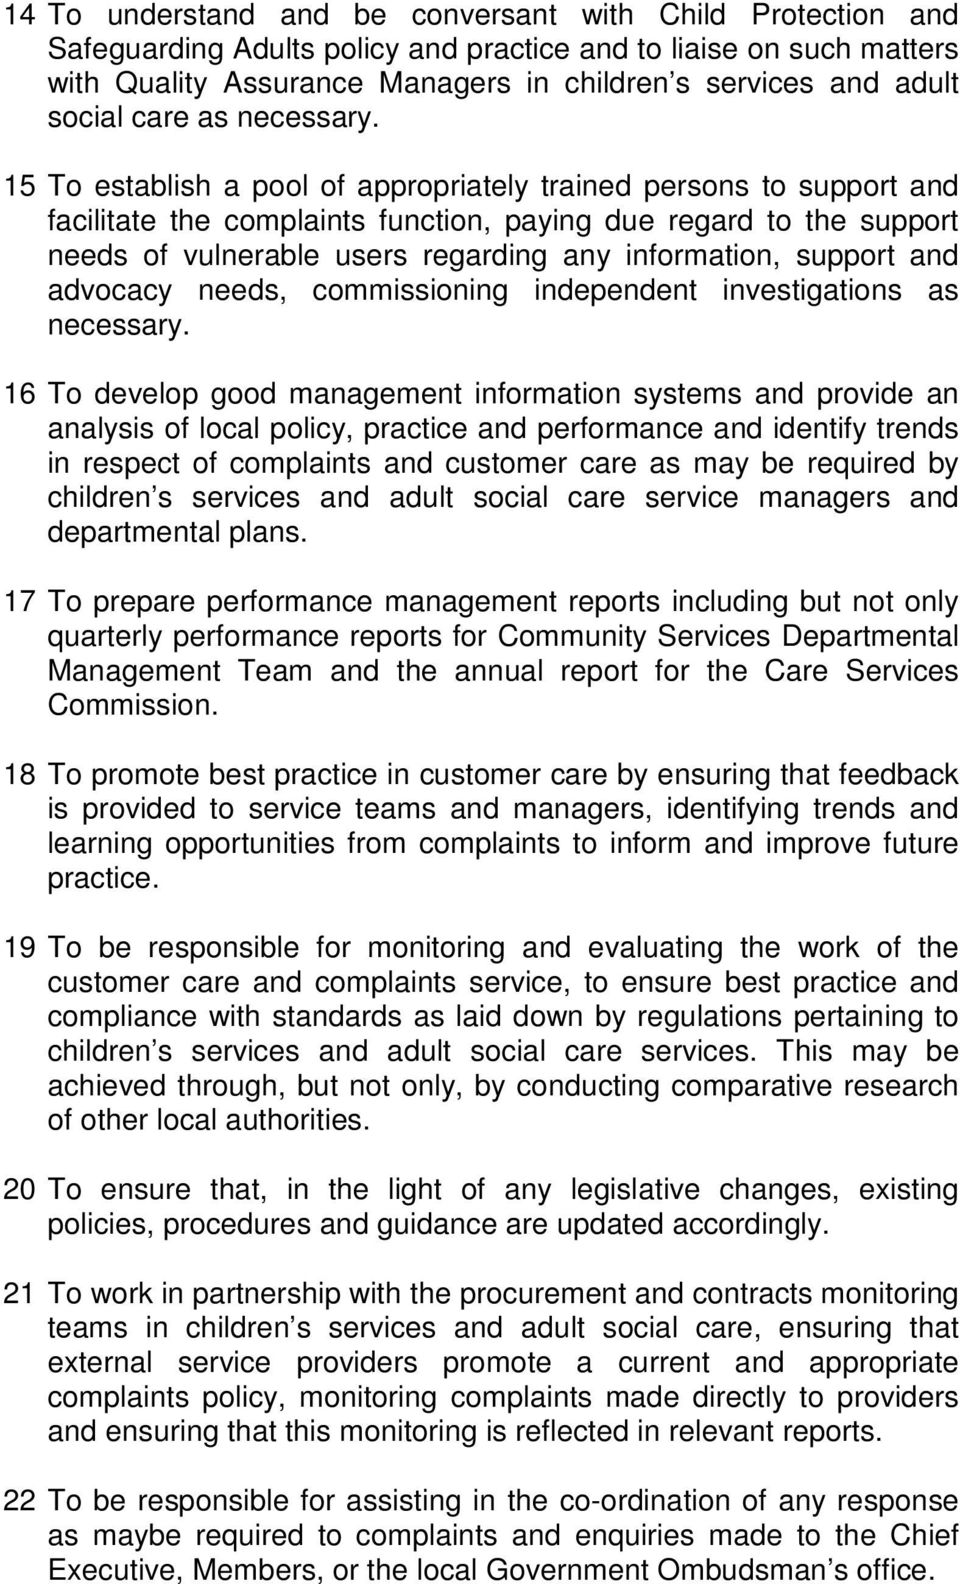 15 To establish a pool of appropriately trained persons to support and facilitate the complaints function, paying due regard to the support needs of vulnerable users regarding any information,